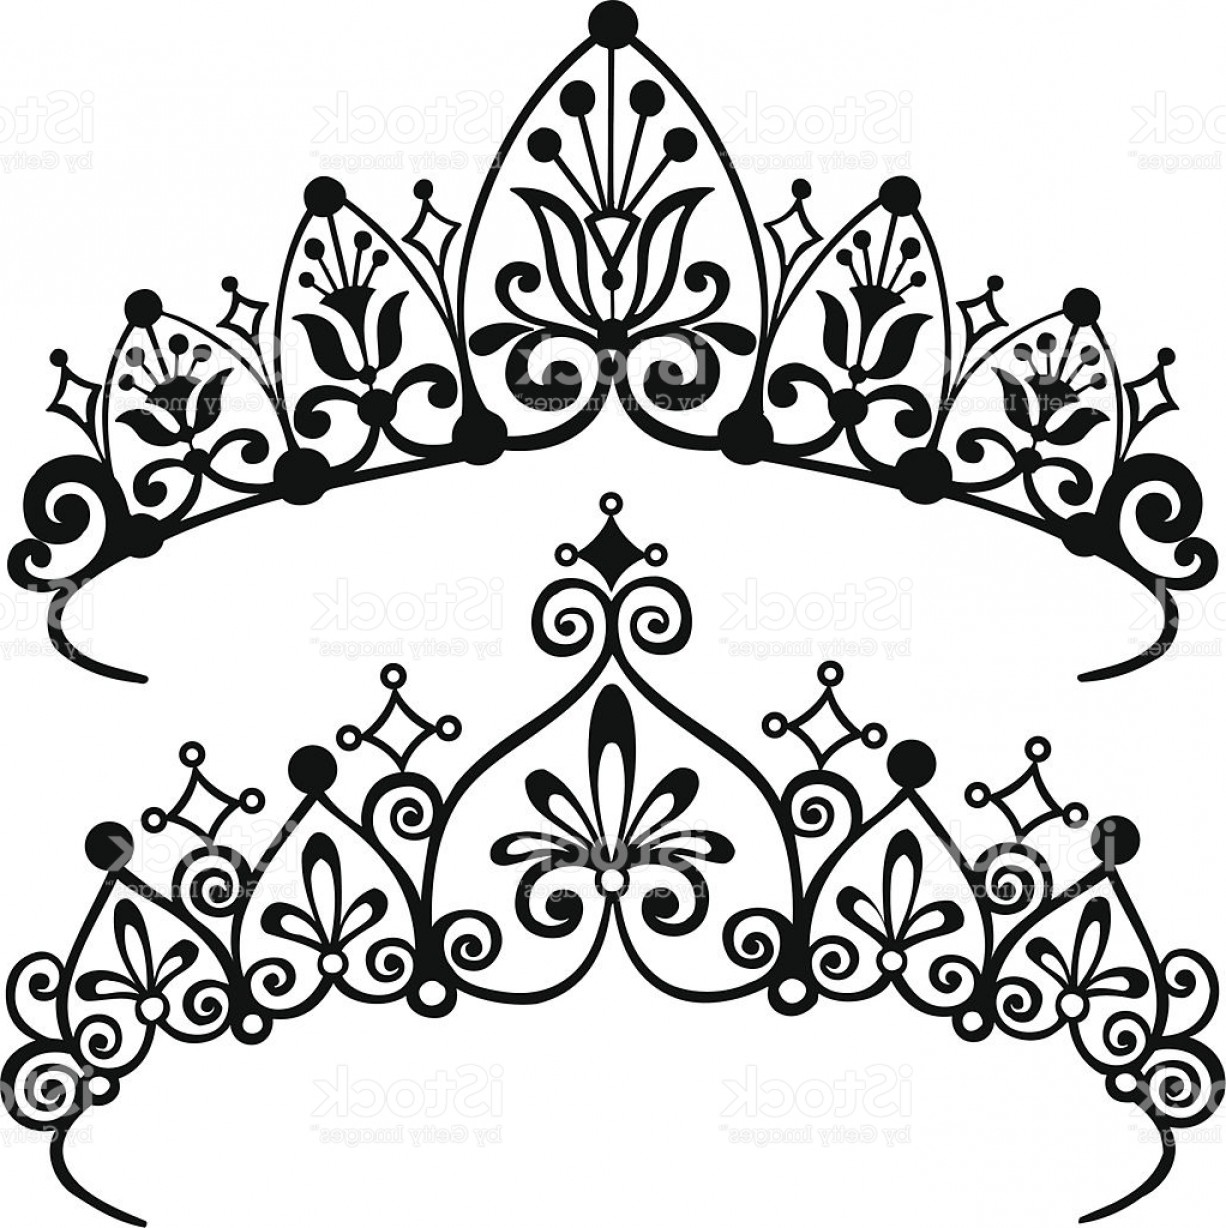 Baby Tiara Silhouette Vector: Princess Tiara Crowns Silhouette Vector Illustration Gm